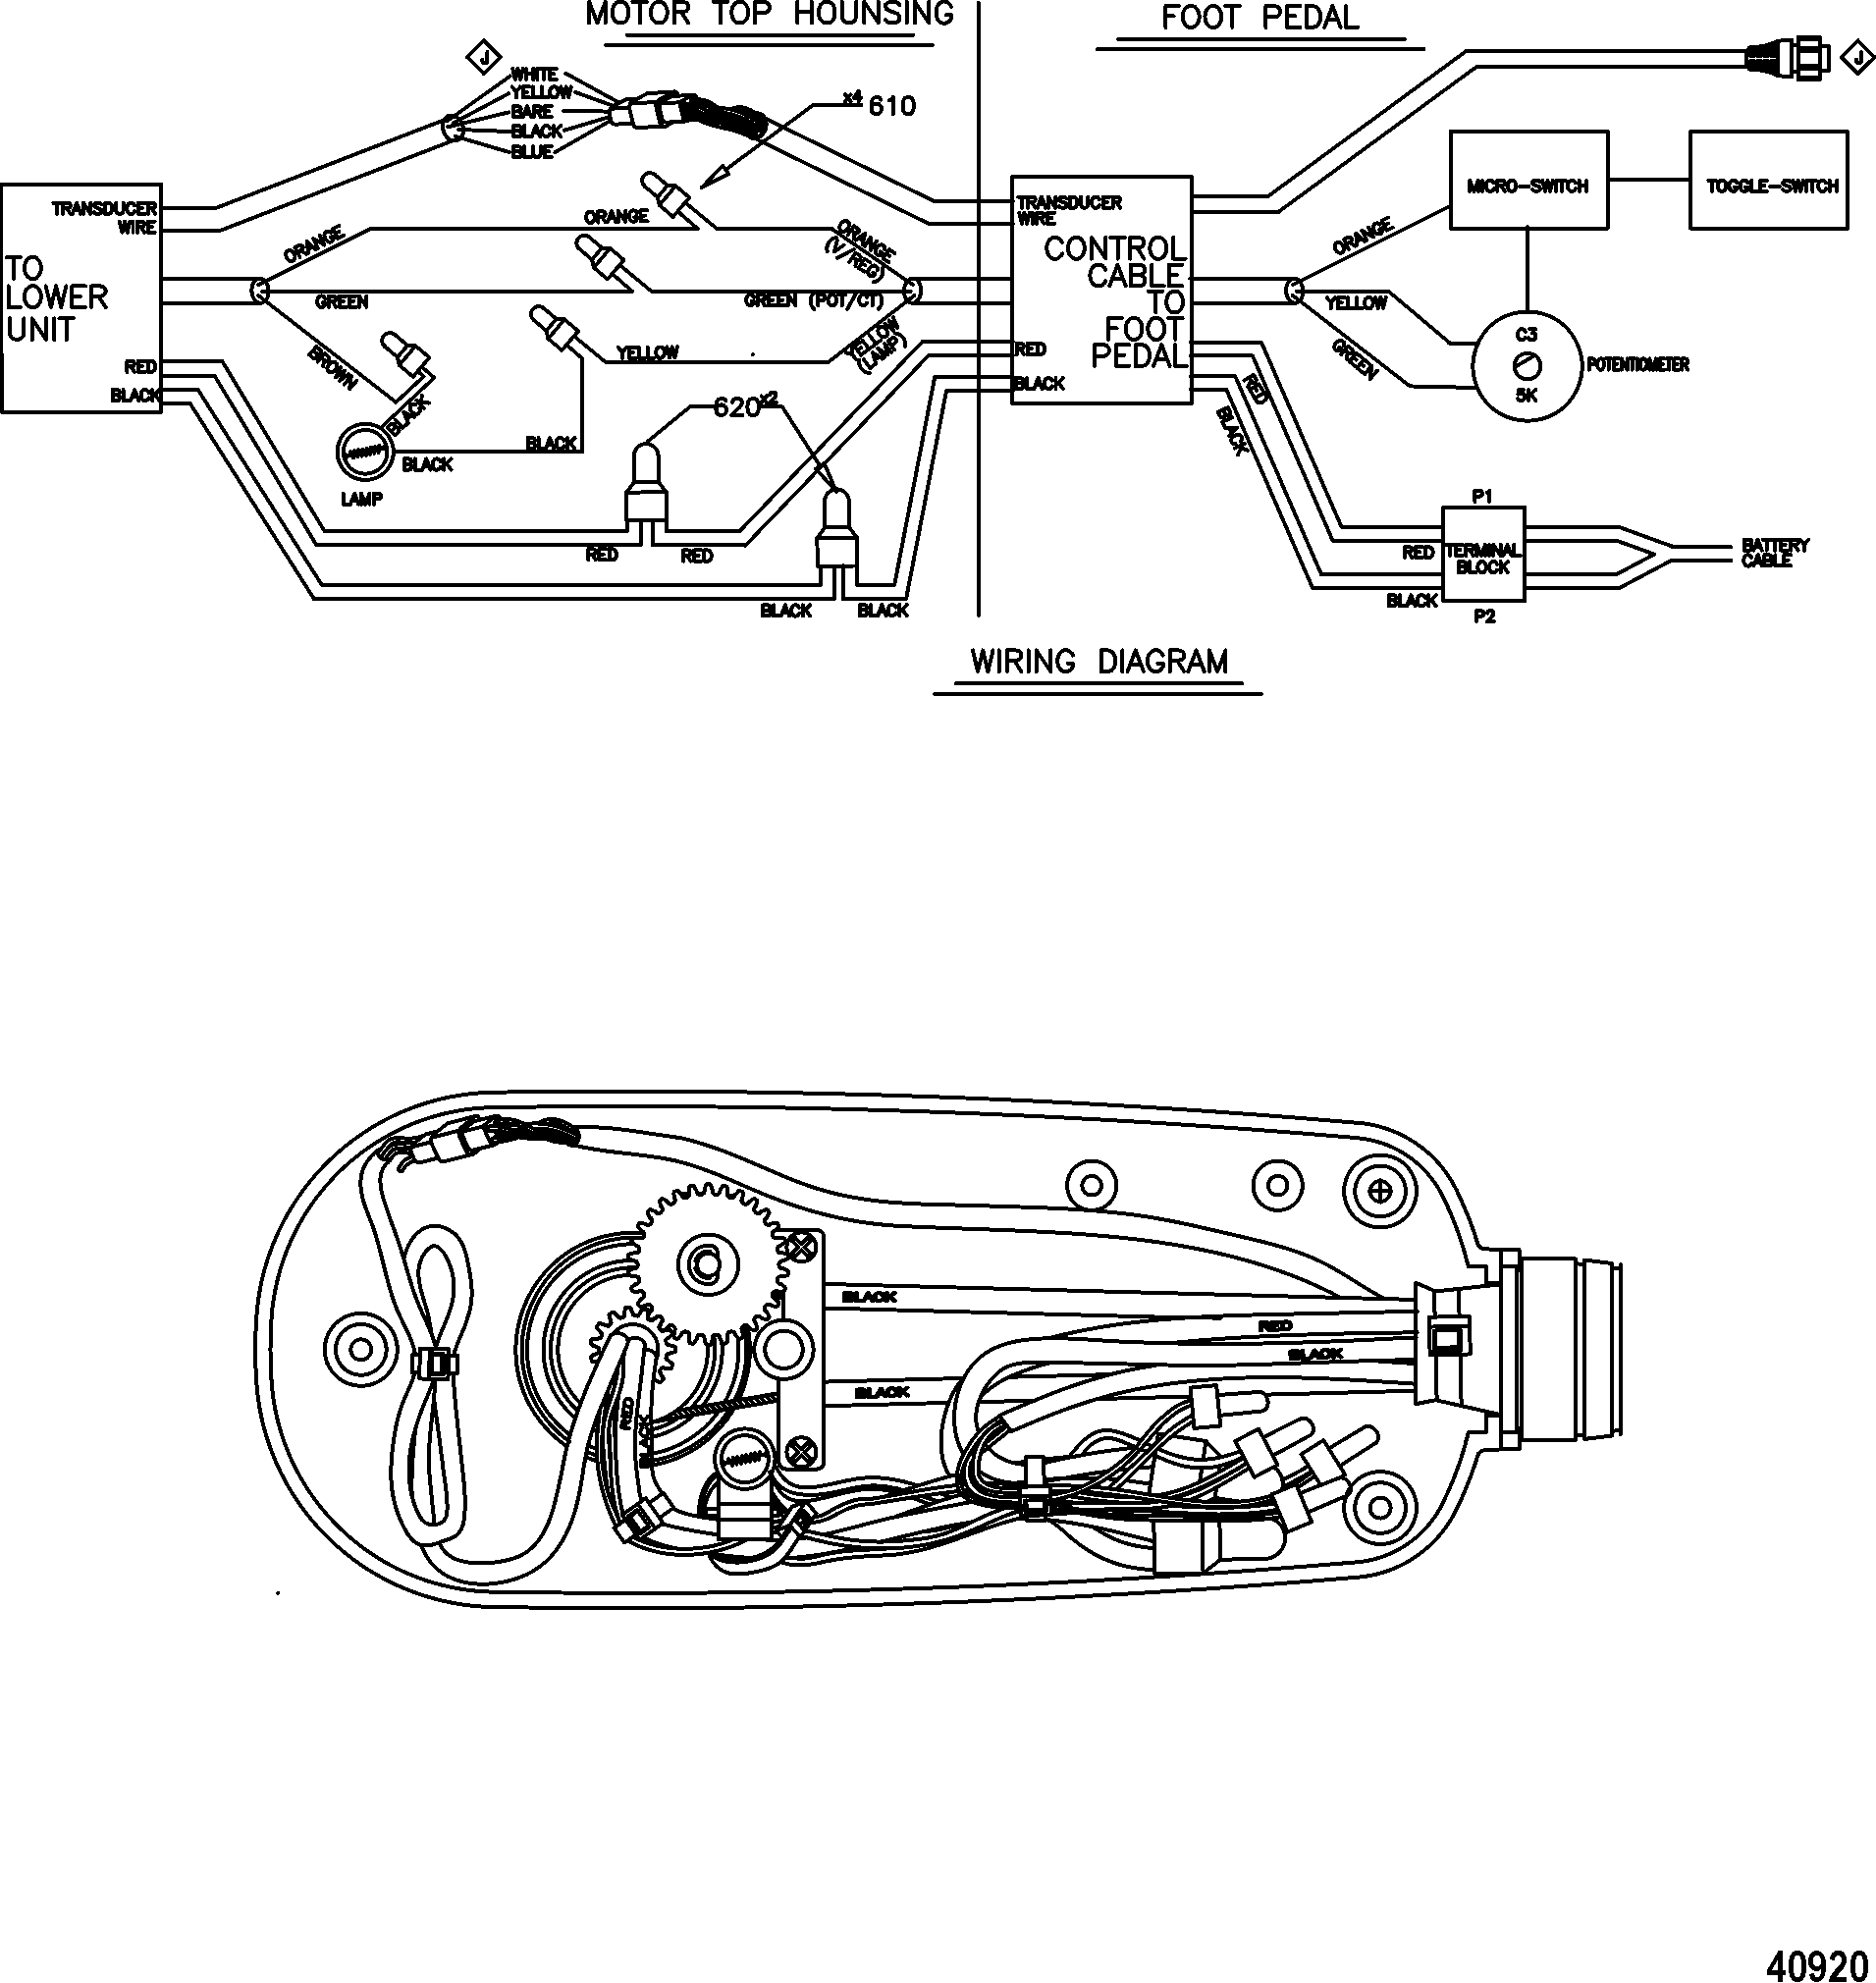 mercury trolling motor motorguide tour lowerance digital series on 24 volt battery system wiring diagram mercury trolling motor motorguide tour lowerance digital series 9b000001 & up wire diagram(tr70lfbd) (tr82lfbd) (24 volt)